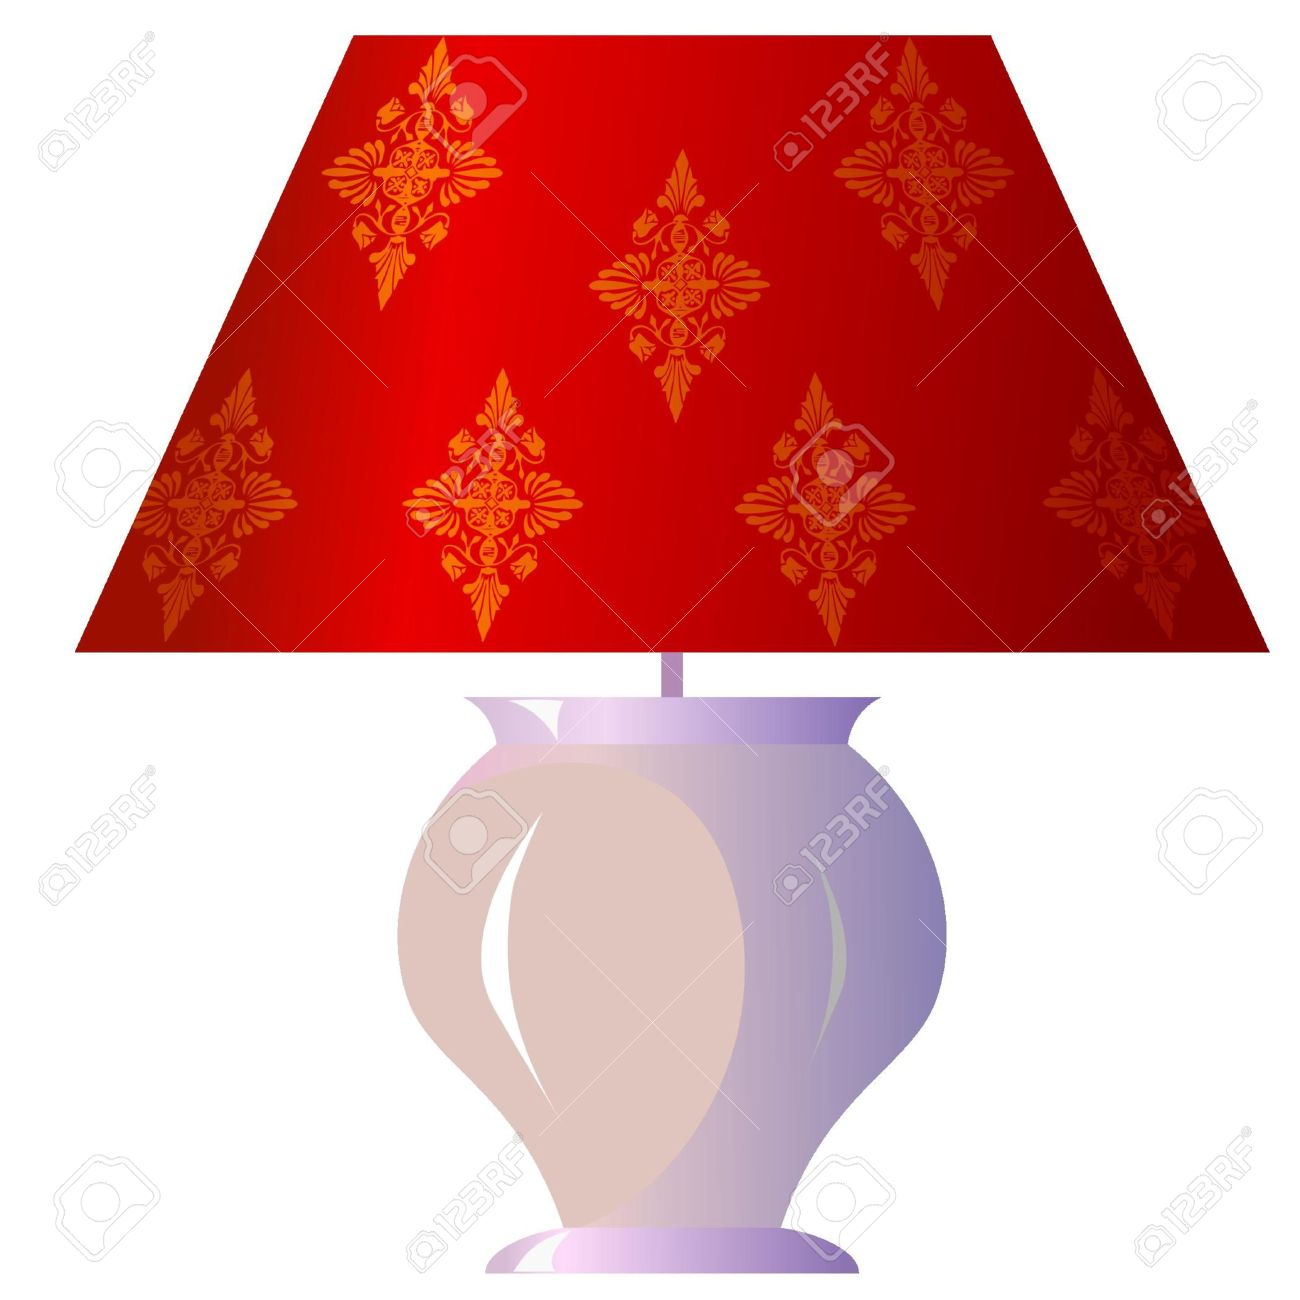 Lamp For The Bedroom Royalty Free Cliparts, Vectors, And Stock.